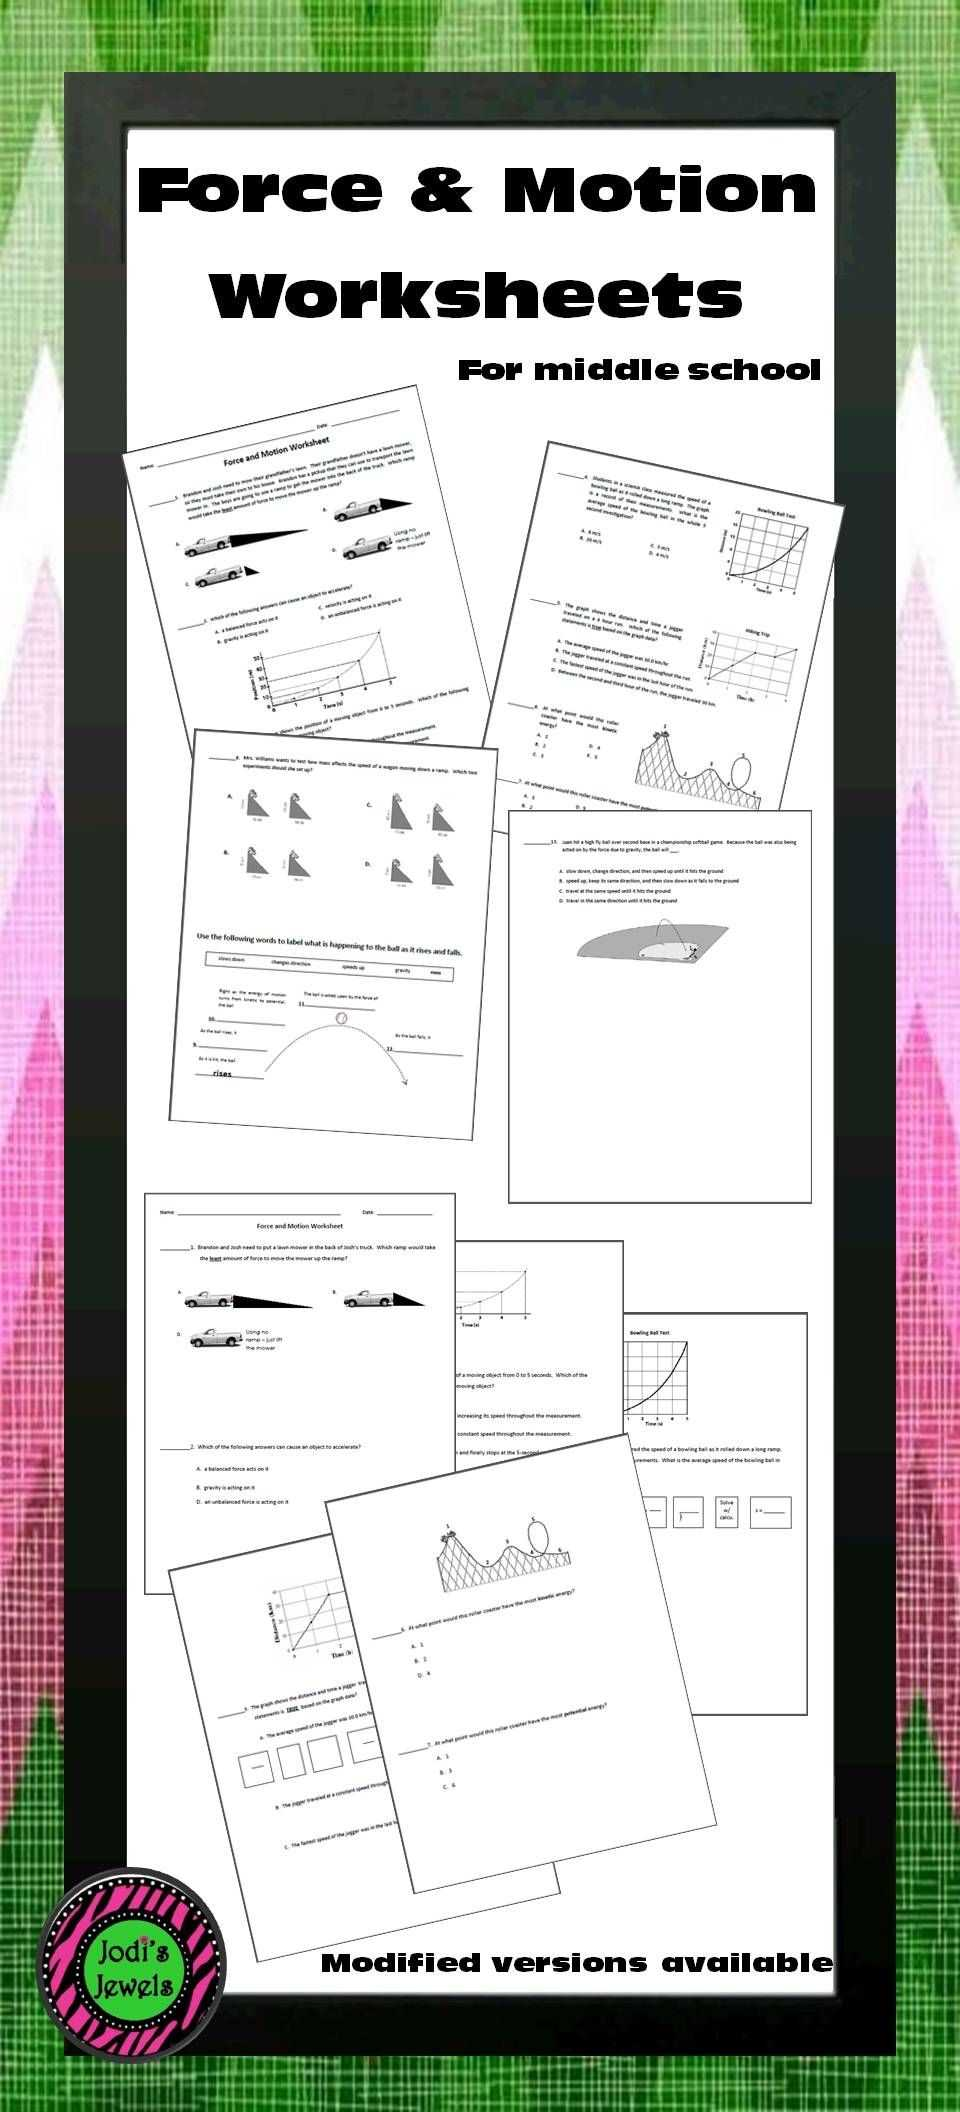 Speed Velocity and Acceleration Worksheet Answer Key as Well as force and Motion Worksheet Pinterest